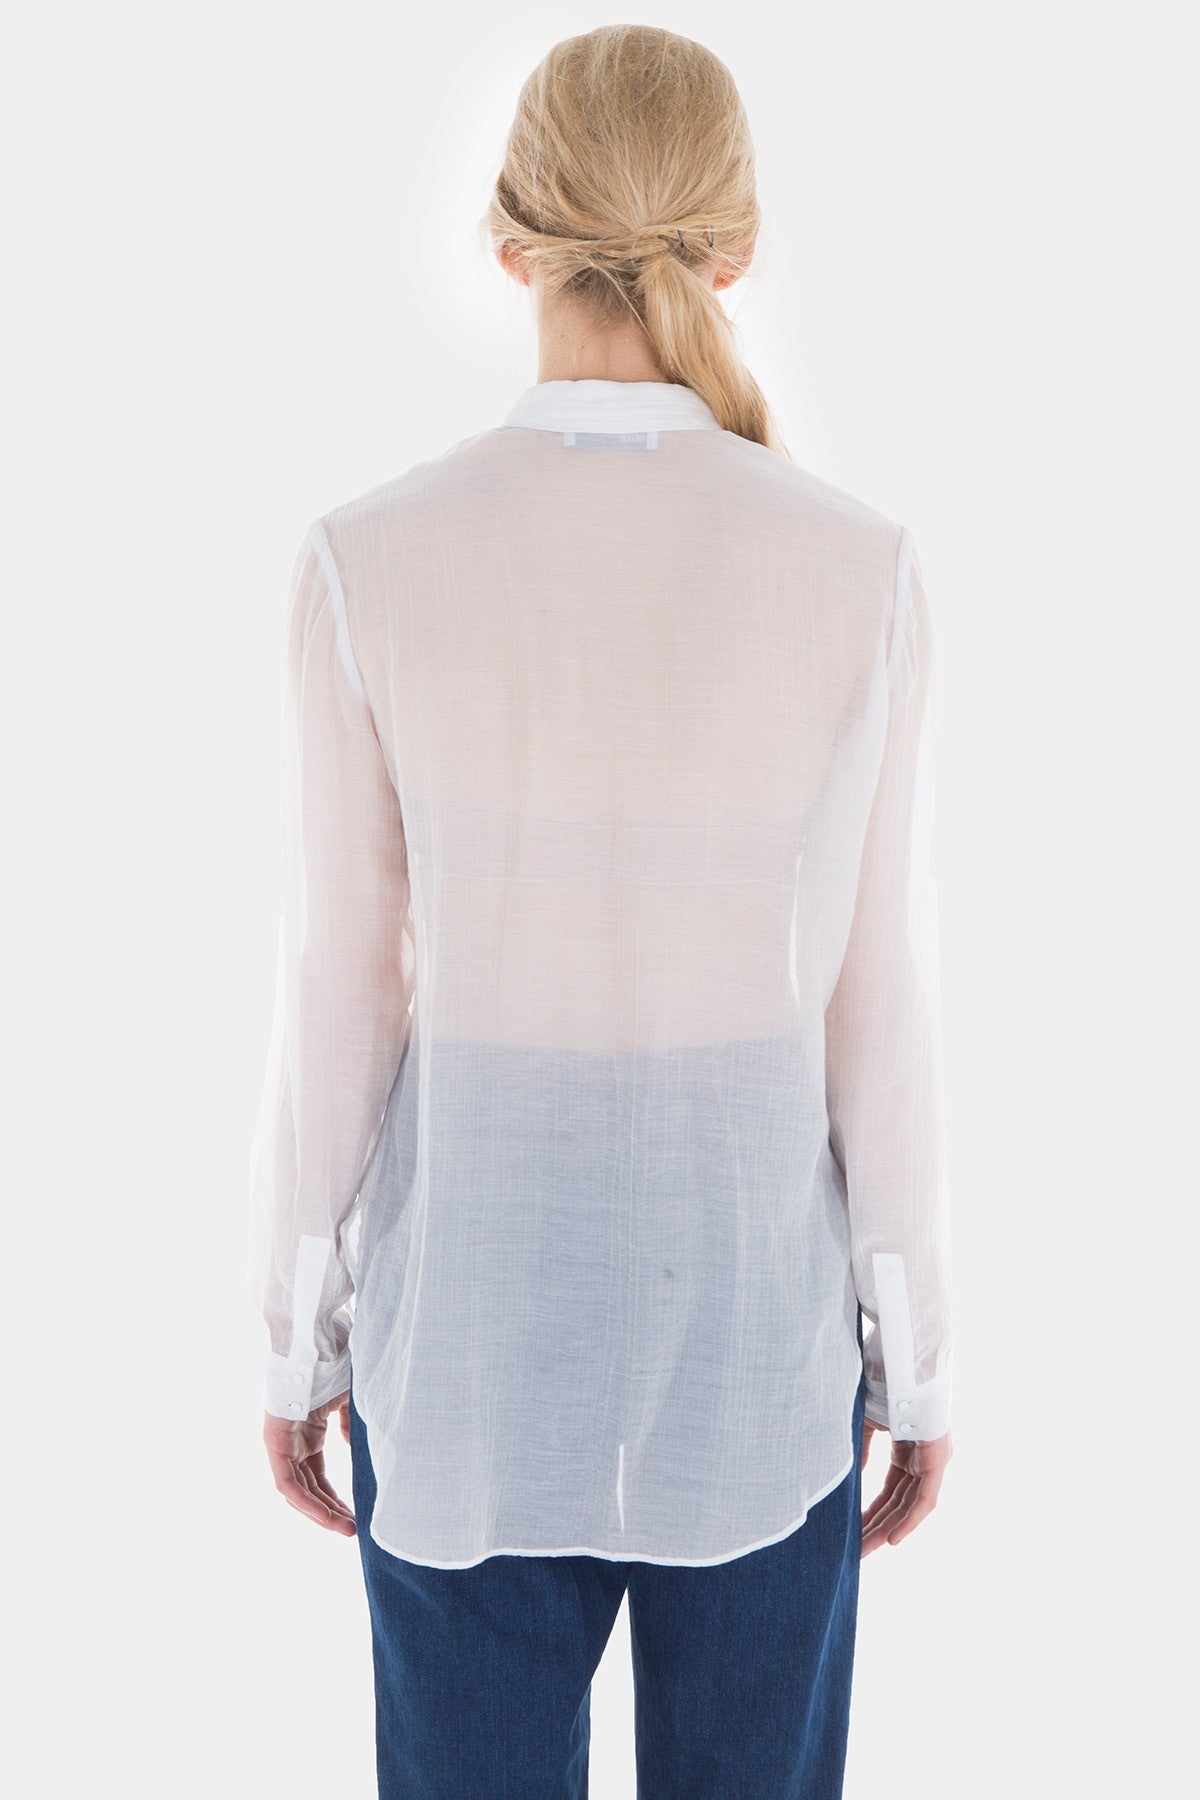 Journey To The Past Sheer Long Sleeved Shirt